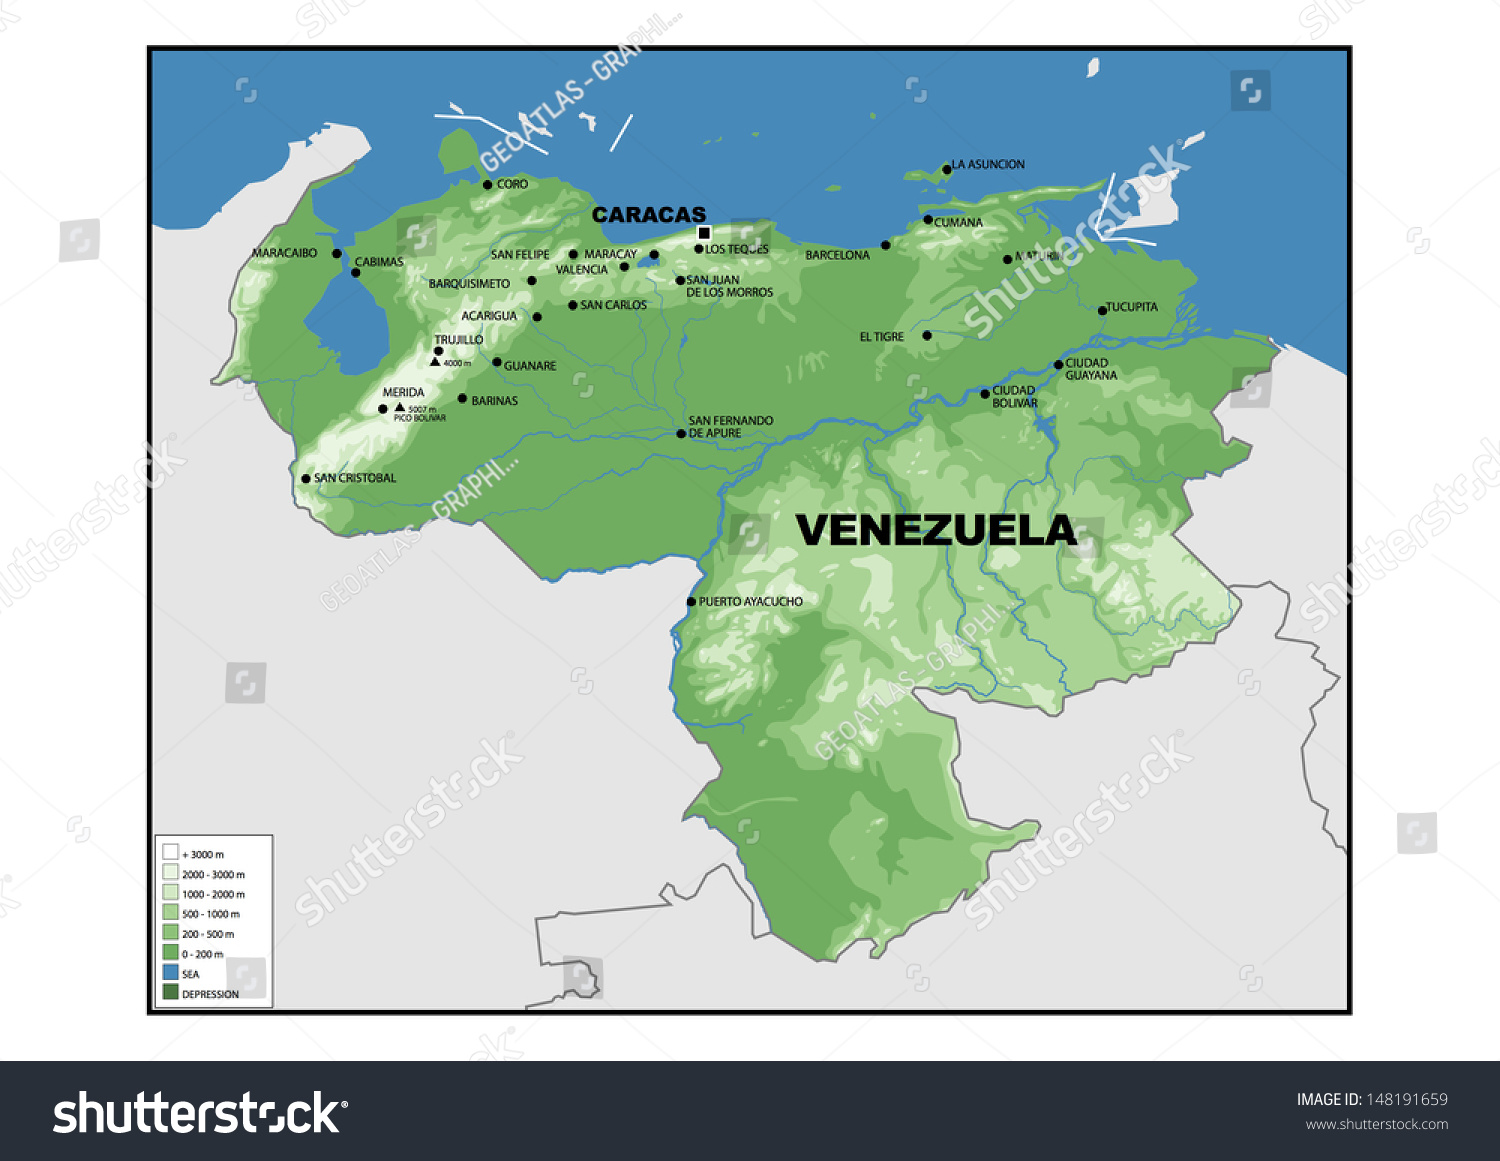 Physical Map Venezuela Stock Illustration Shutterstock - Physical of map venezuela